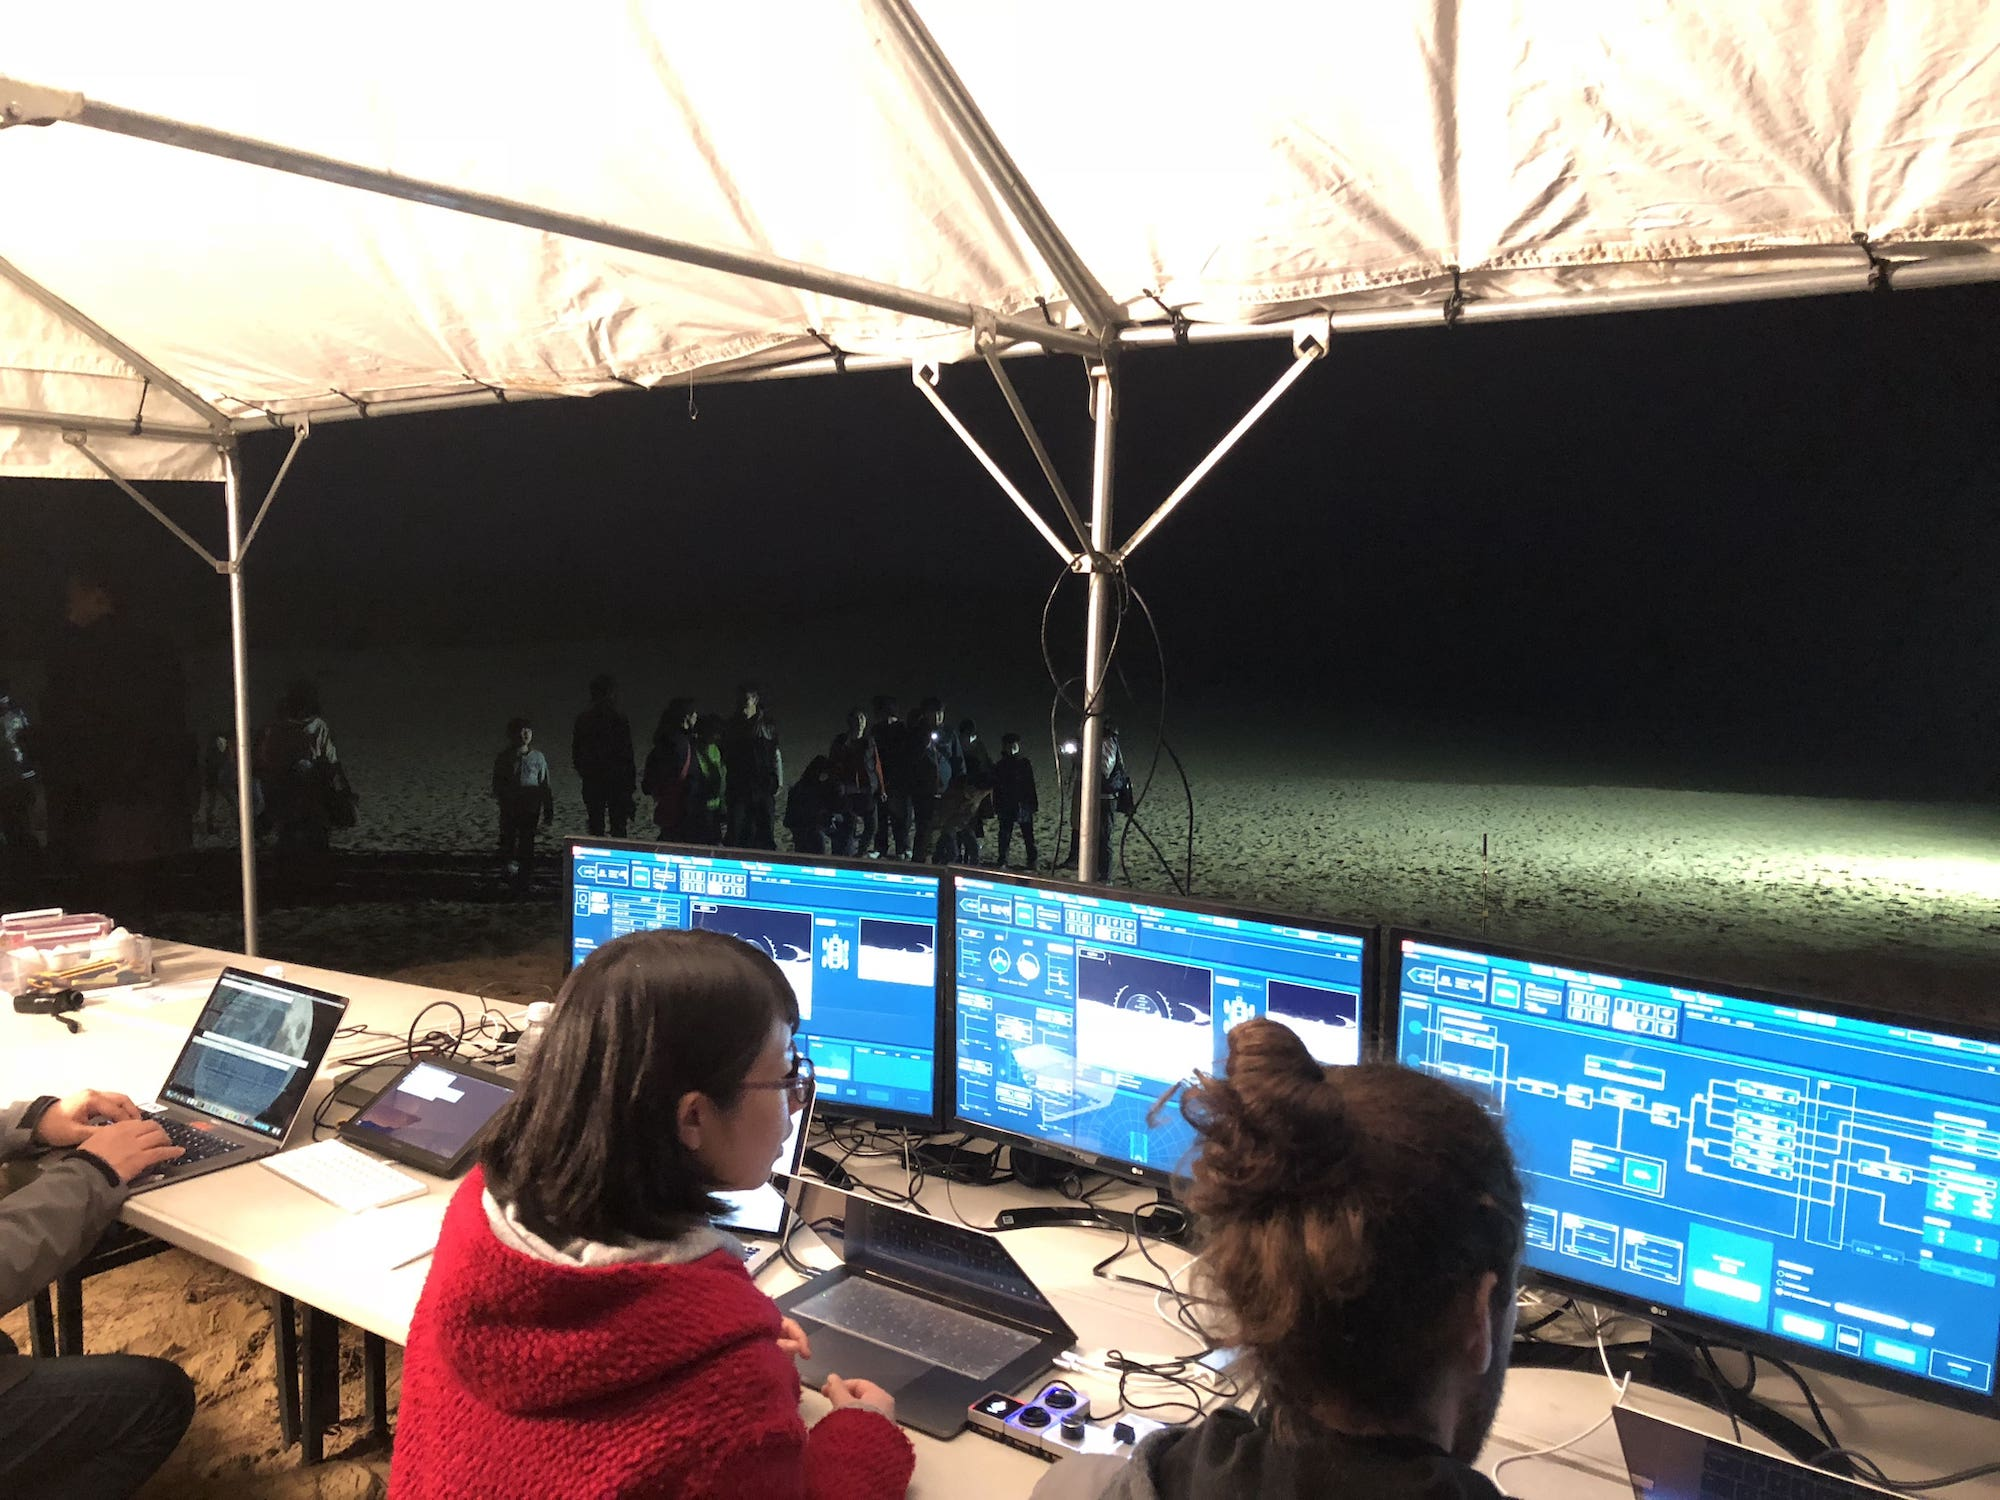 Mission Control Center on a field test in Tottori sand dunes